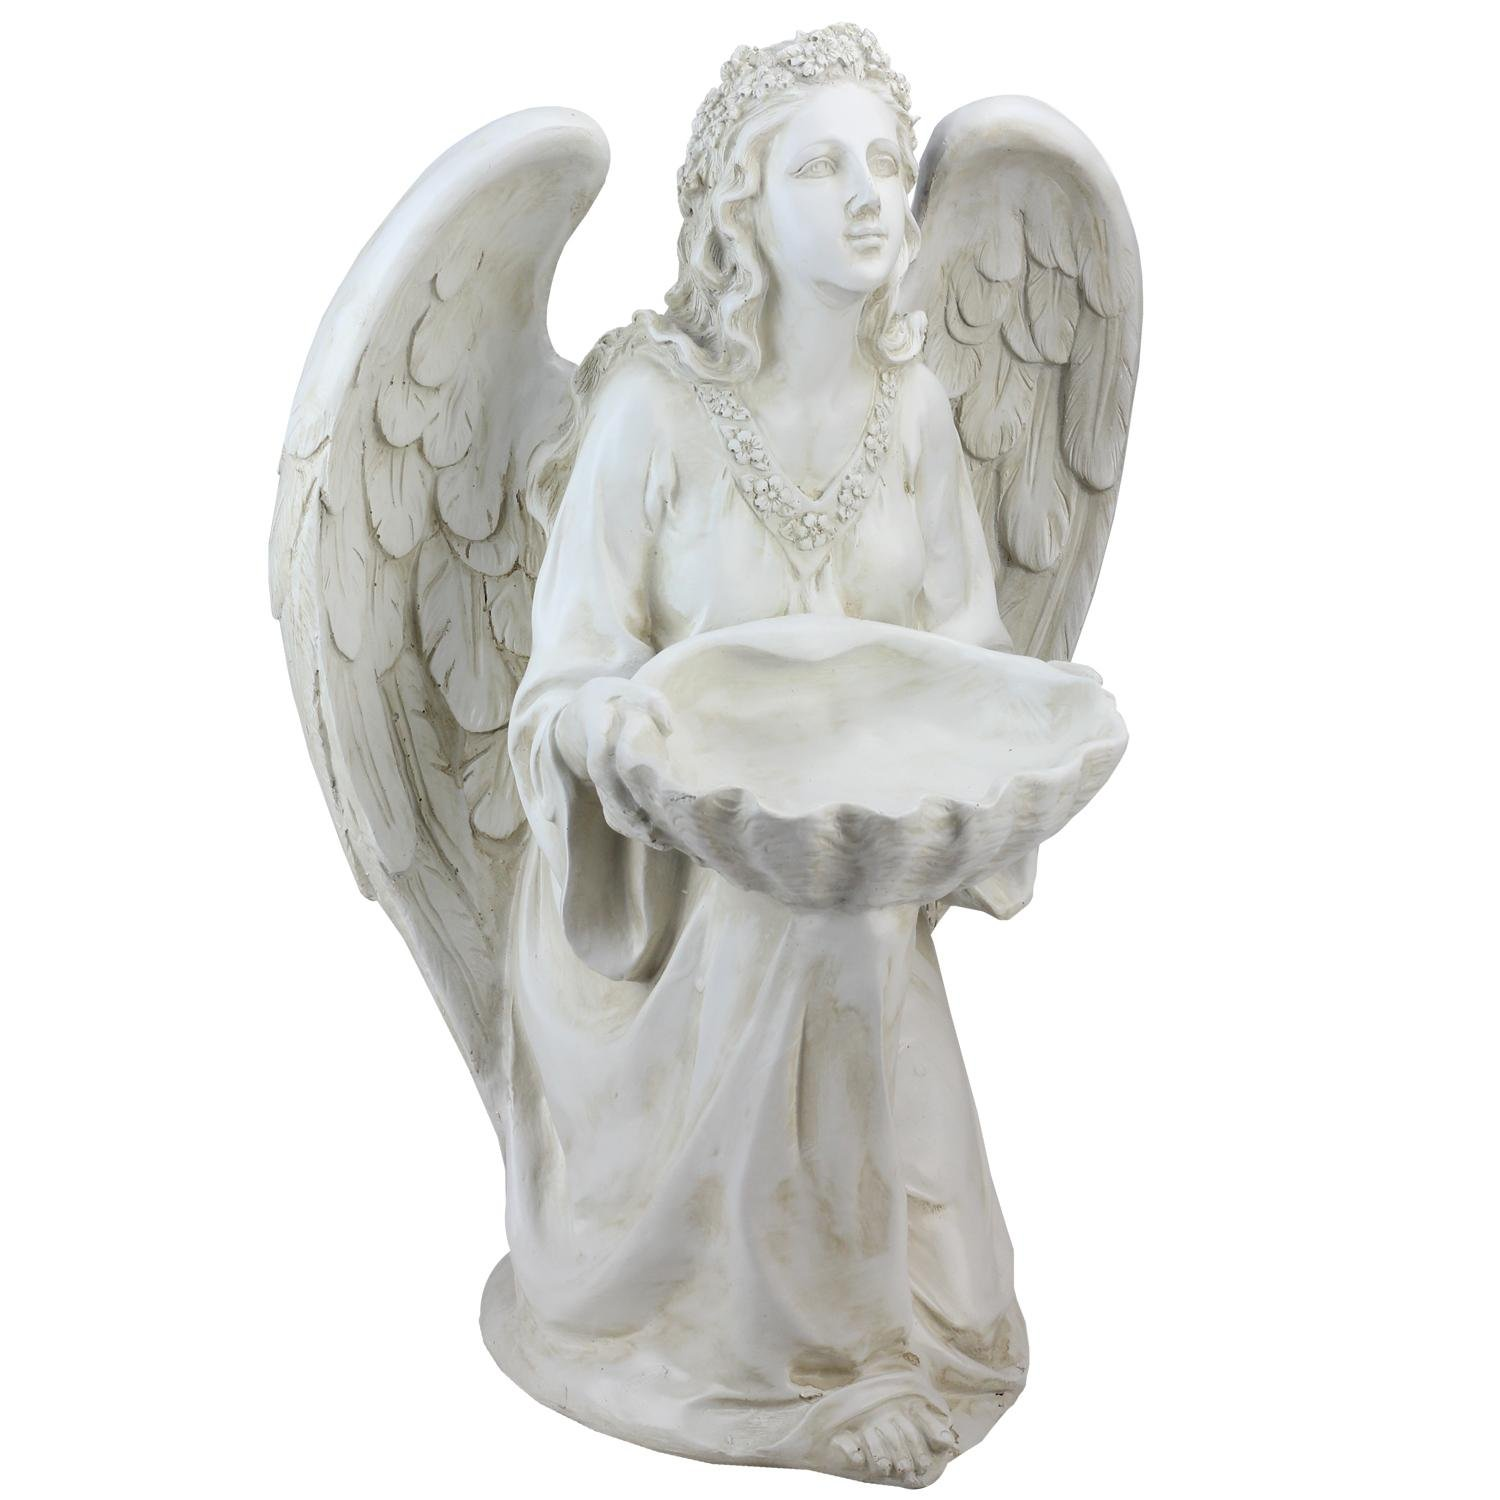 Northlight Kneeling Angel Holding Shell Religious Outdoor Garden Statue Bird Feeder, 19.75